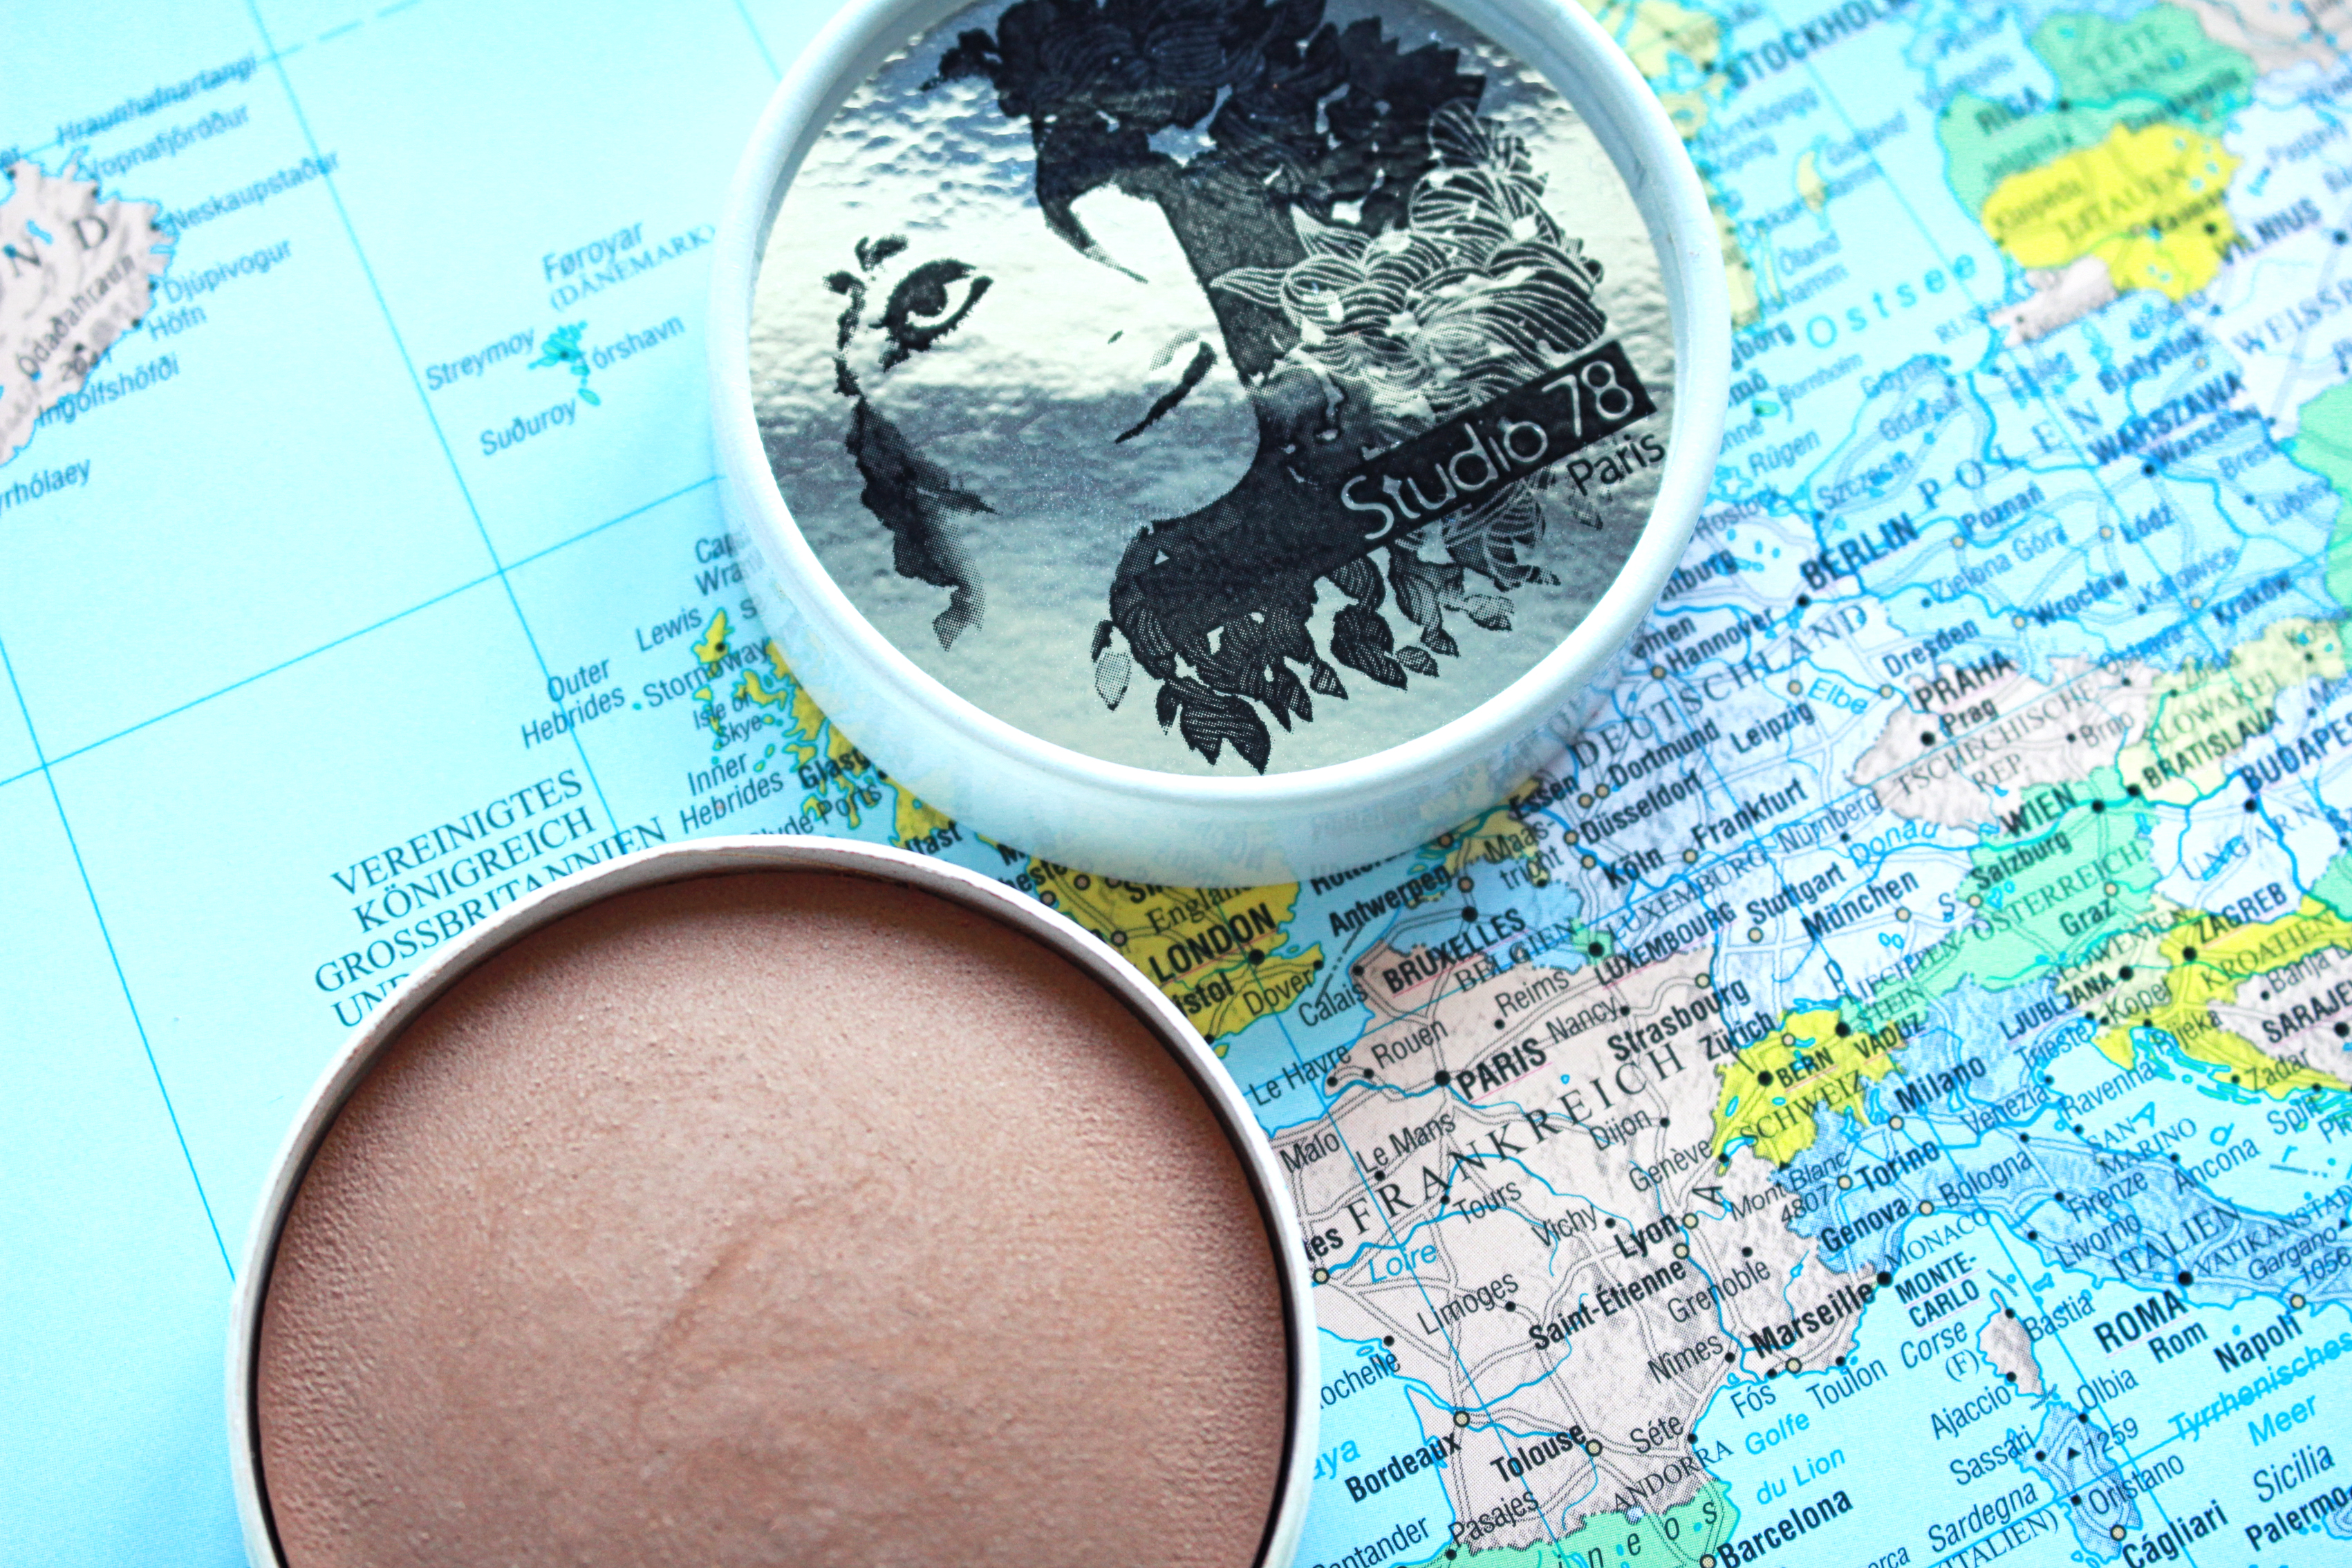 studio78-paris-bronzing-powder-white-sand-naturkosmetik